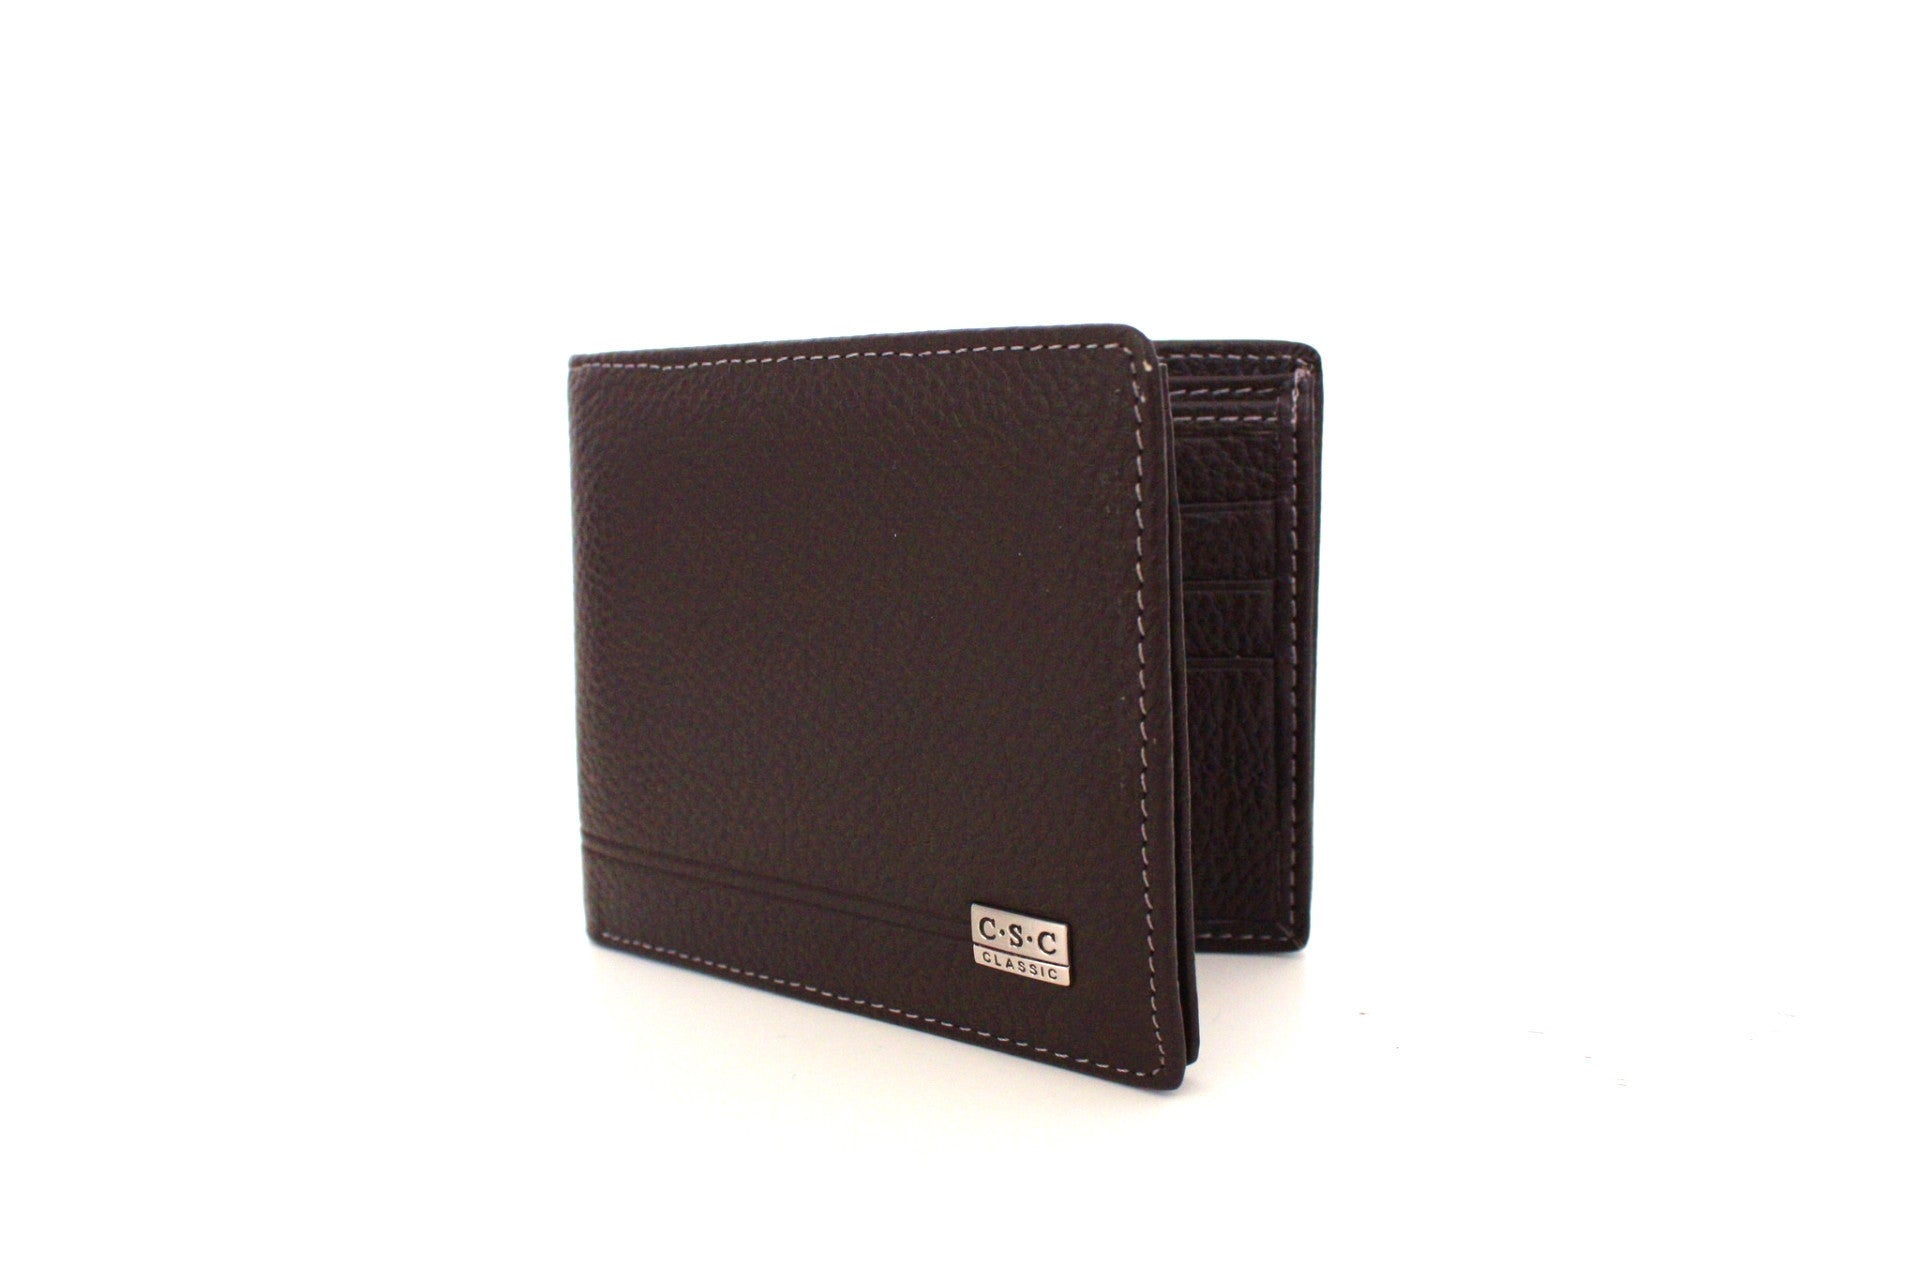 240 NEW Pebble Embossed Genuine Leather Men/'s Bi-fold  Wallet Black Brown SALE